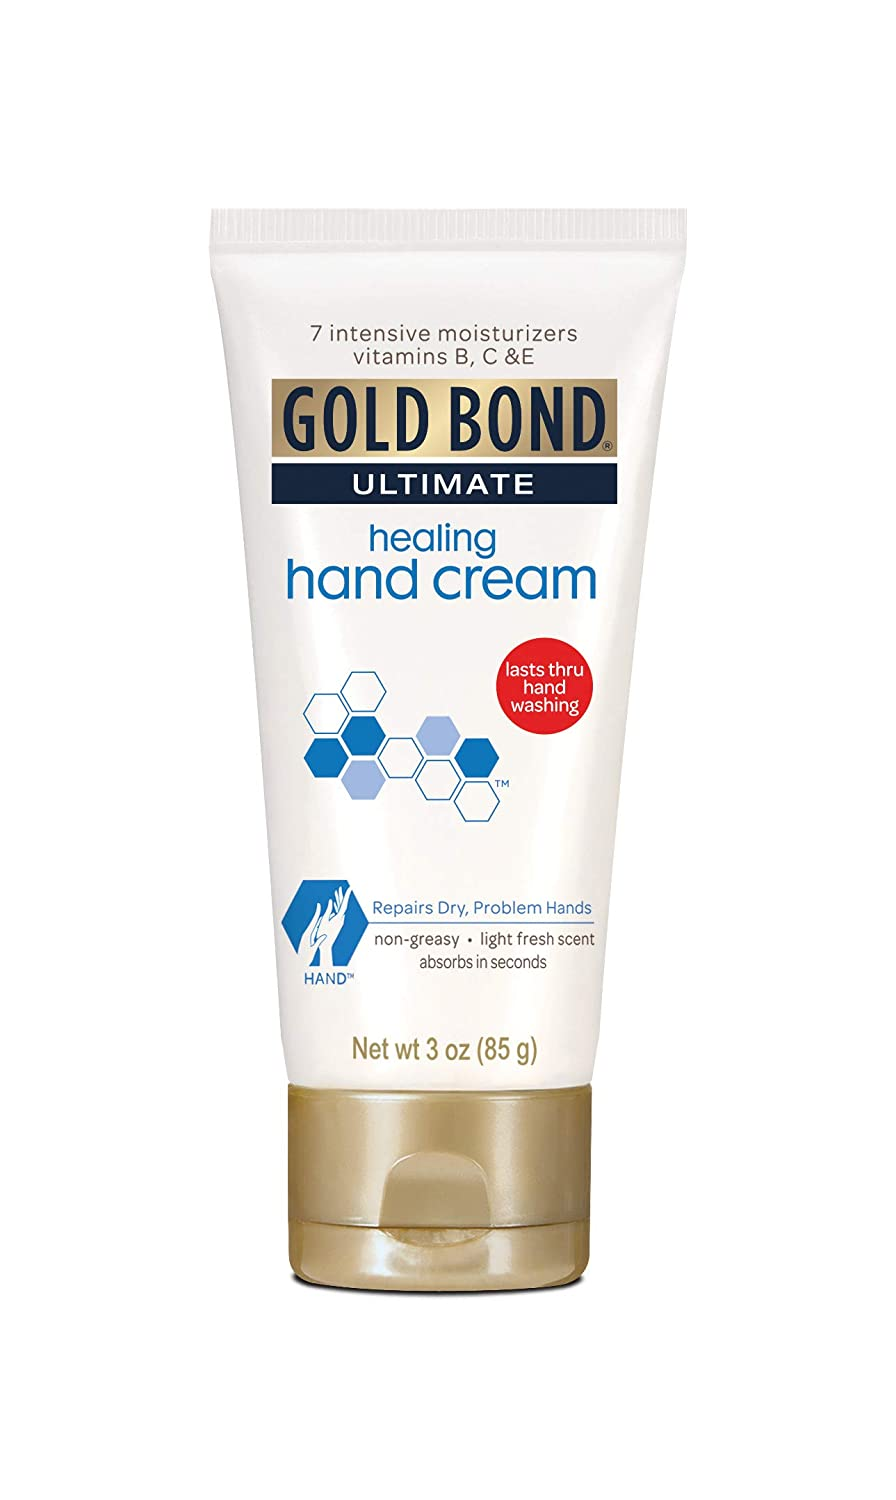 Gold Bond Ultimate Intensive Healing Hand Cream 3 oz (Pack of 7)